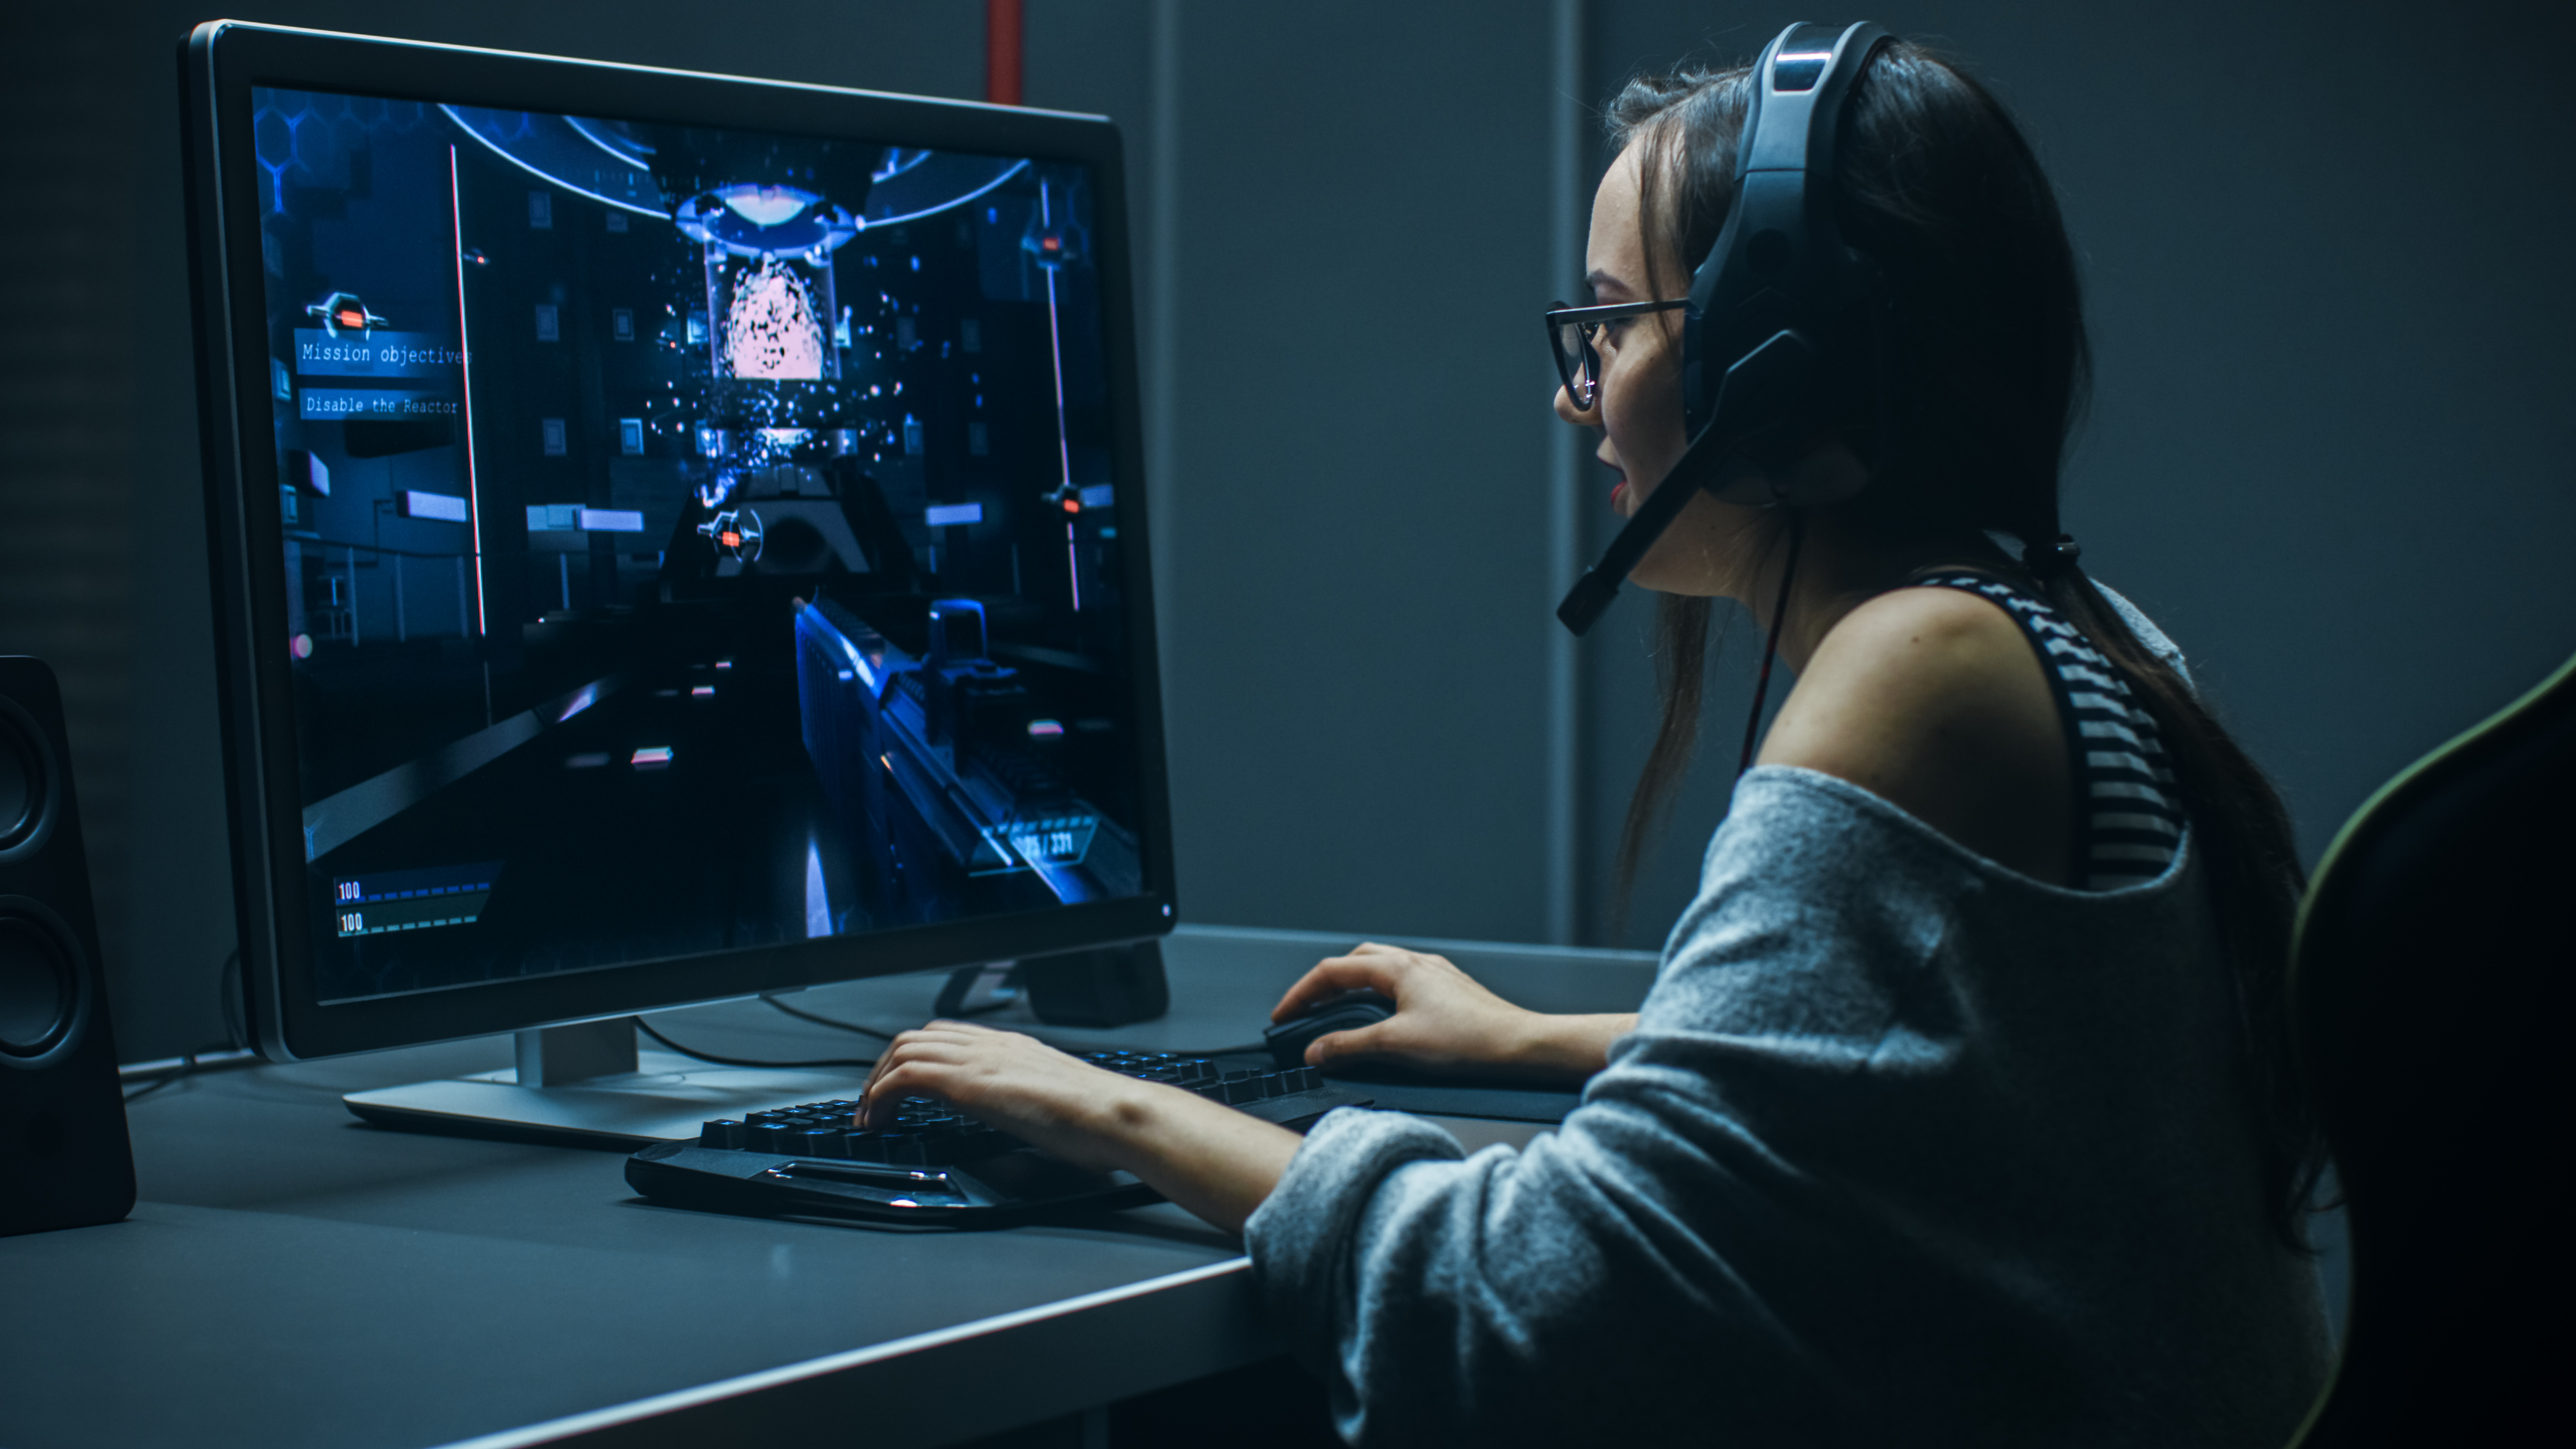 Female gamer playing on a large computer monitor with keyboard, mouse and her headset on.